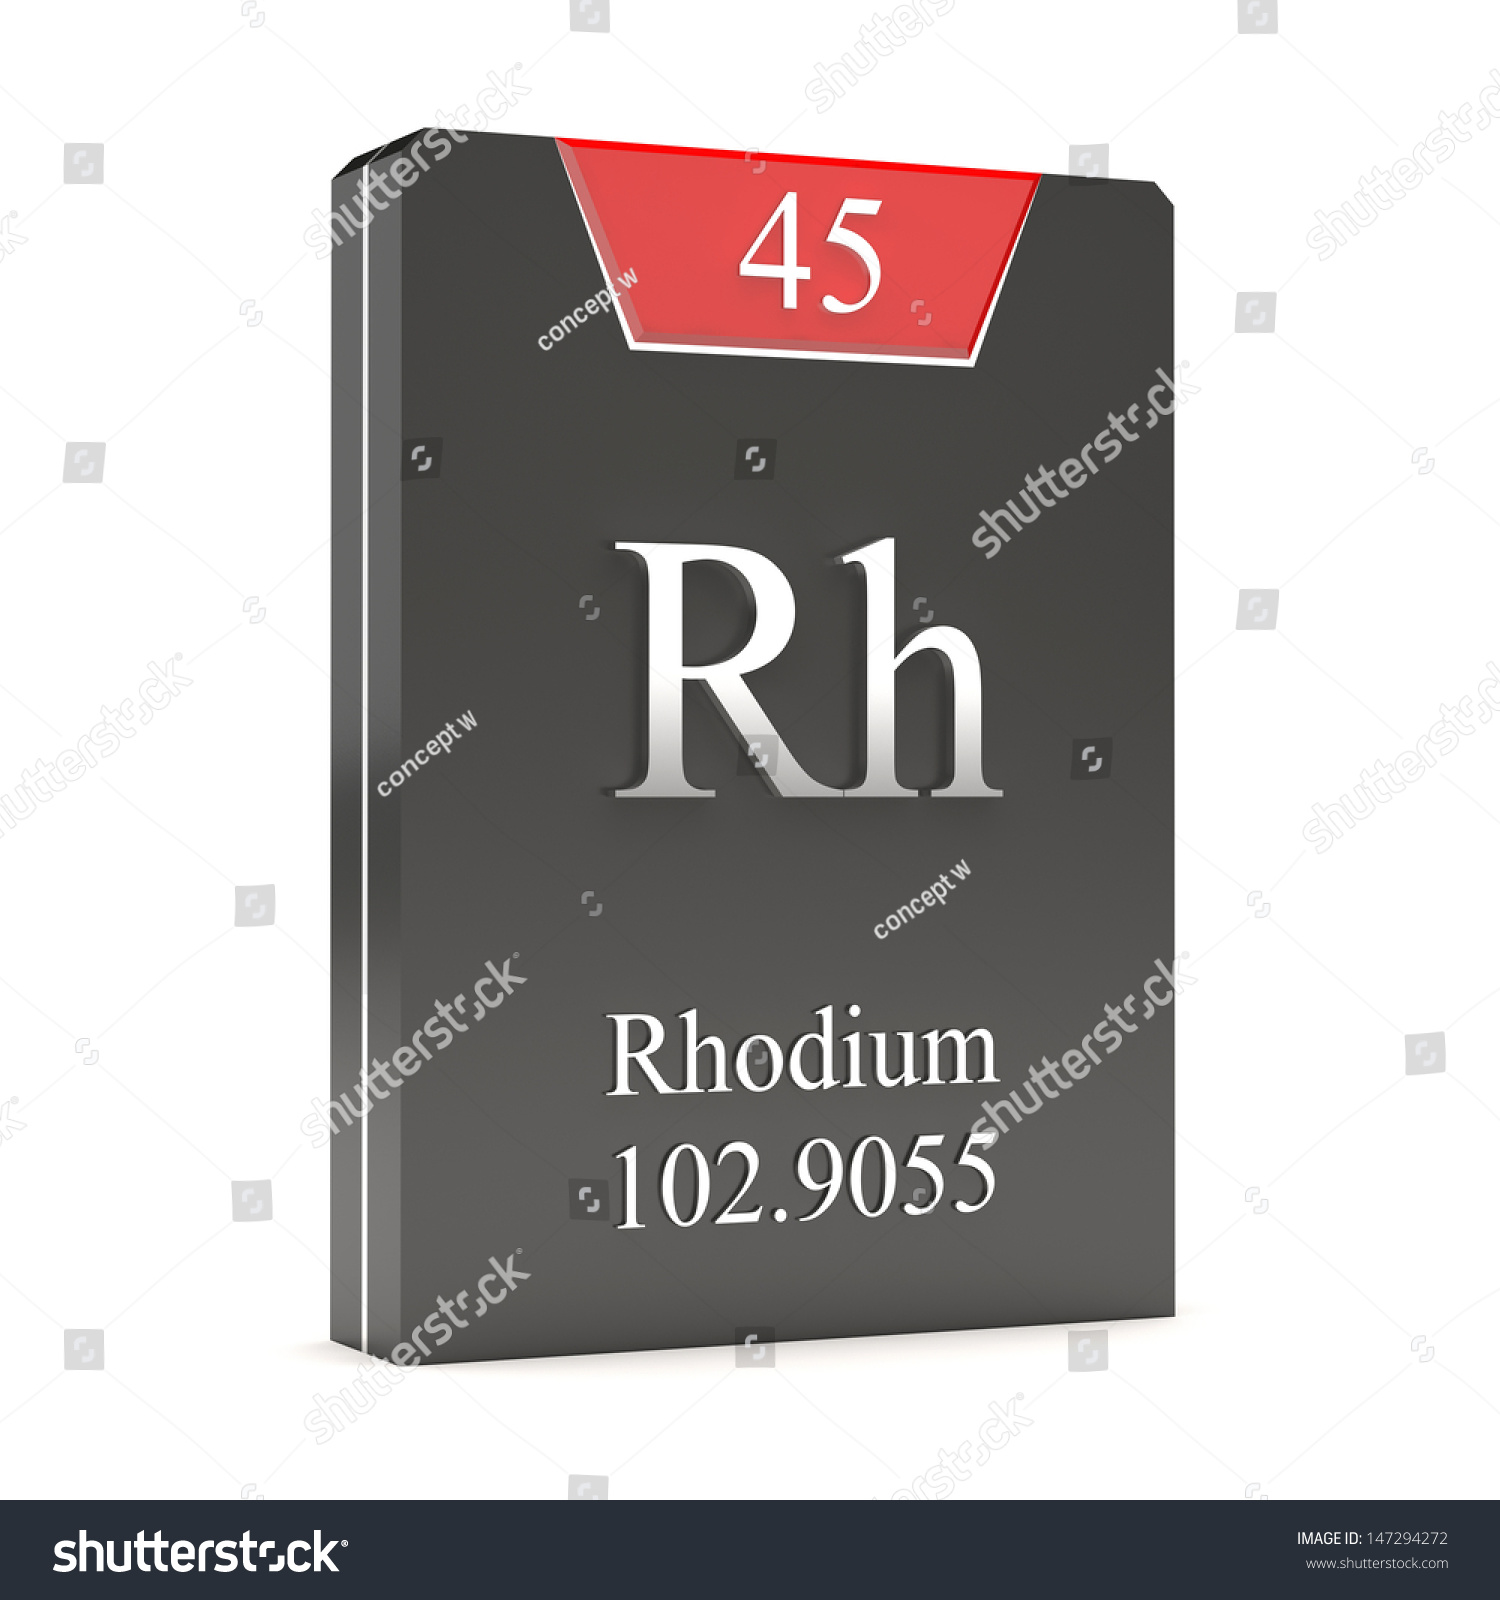 Rh on periodic table image collections periodic table images periodic table rhodium images periodic table images periodic table rh image collections periodic table images rhodium gamestrikefo Images